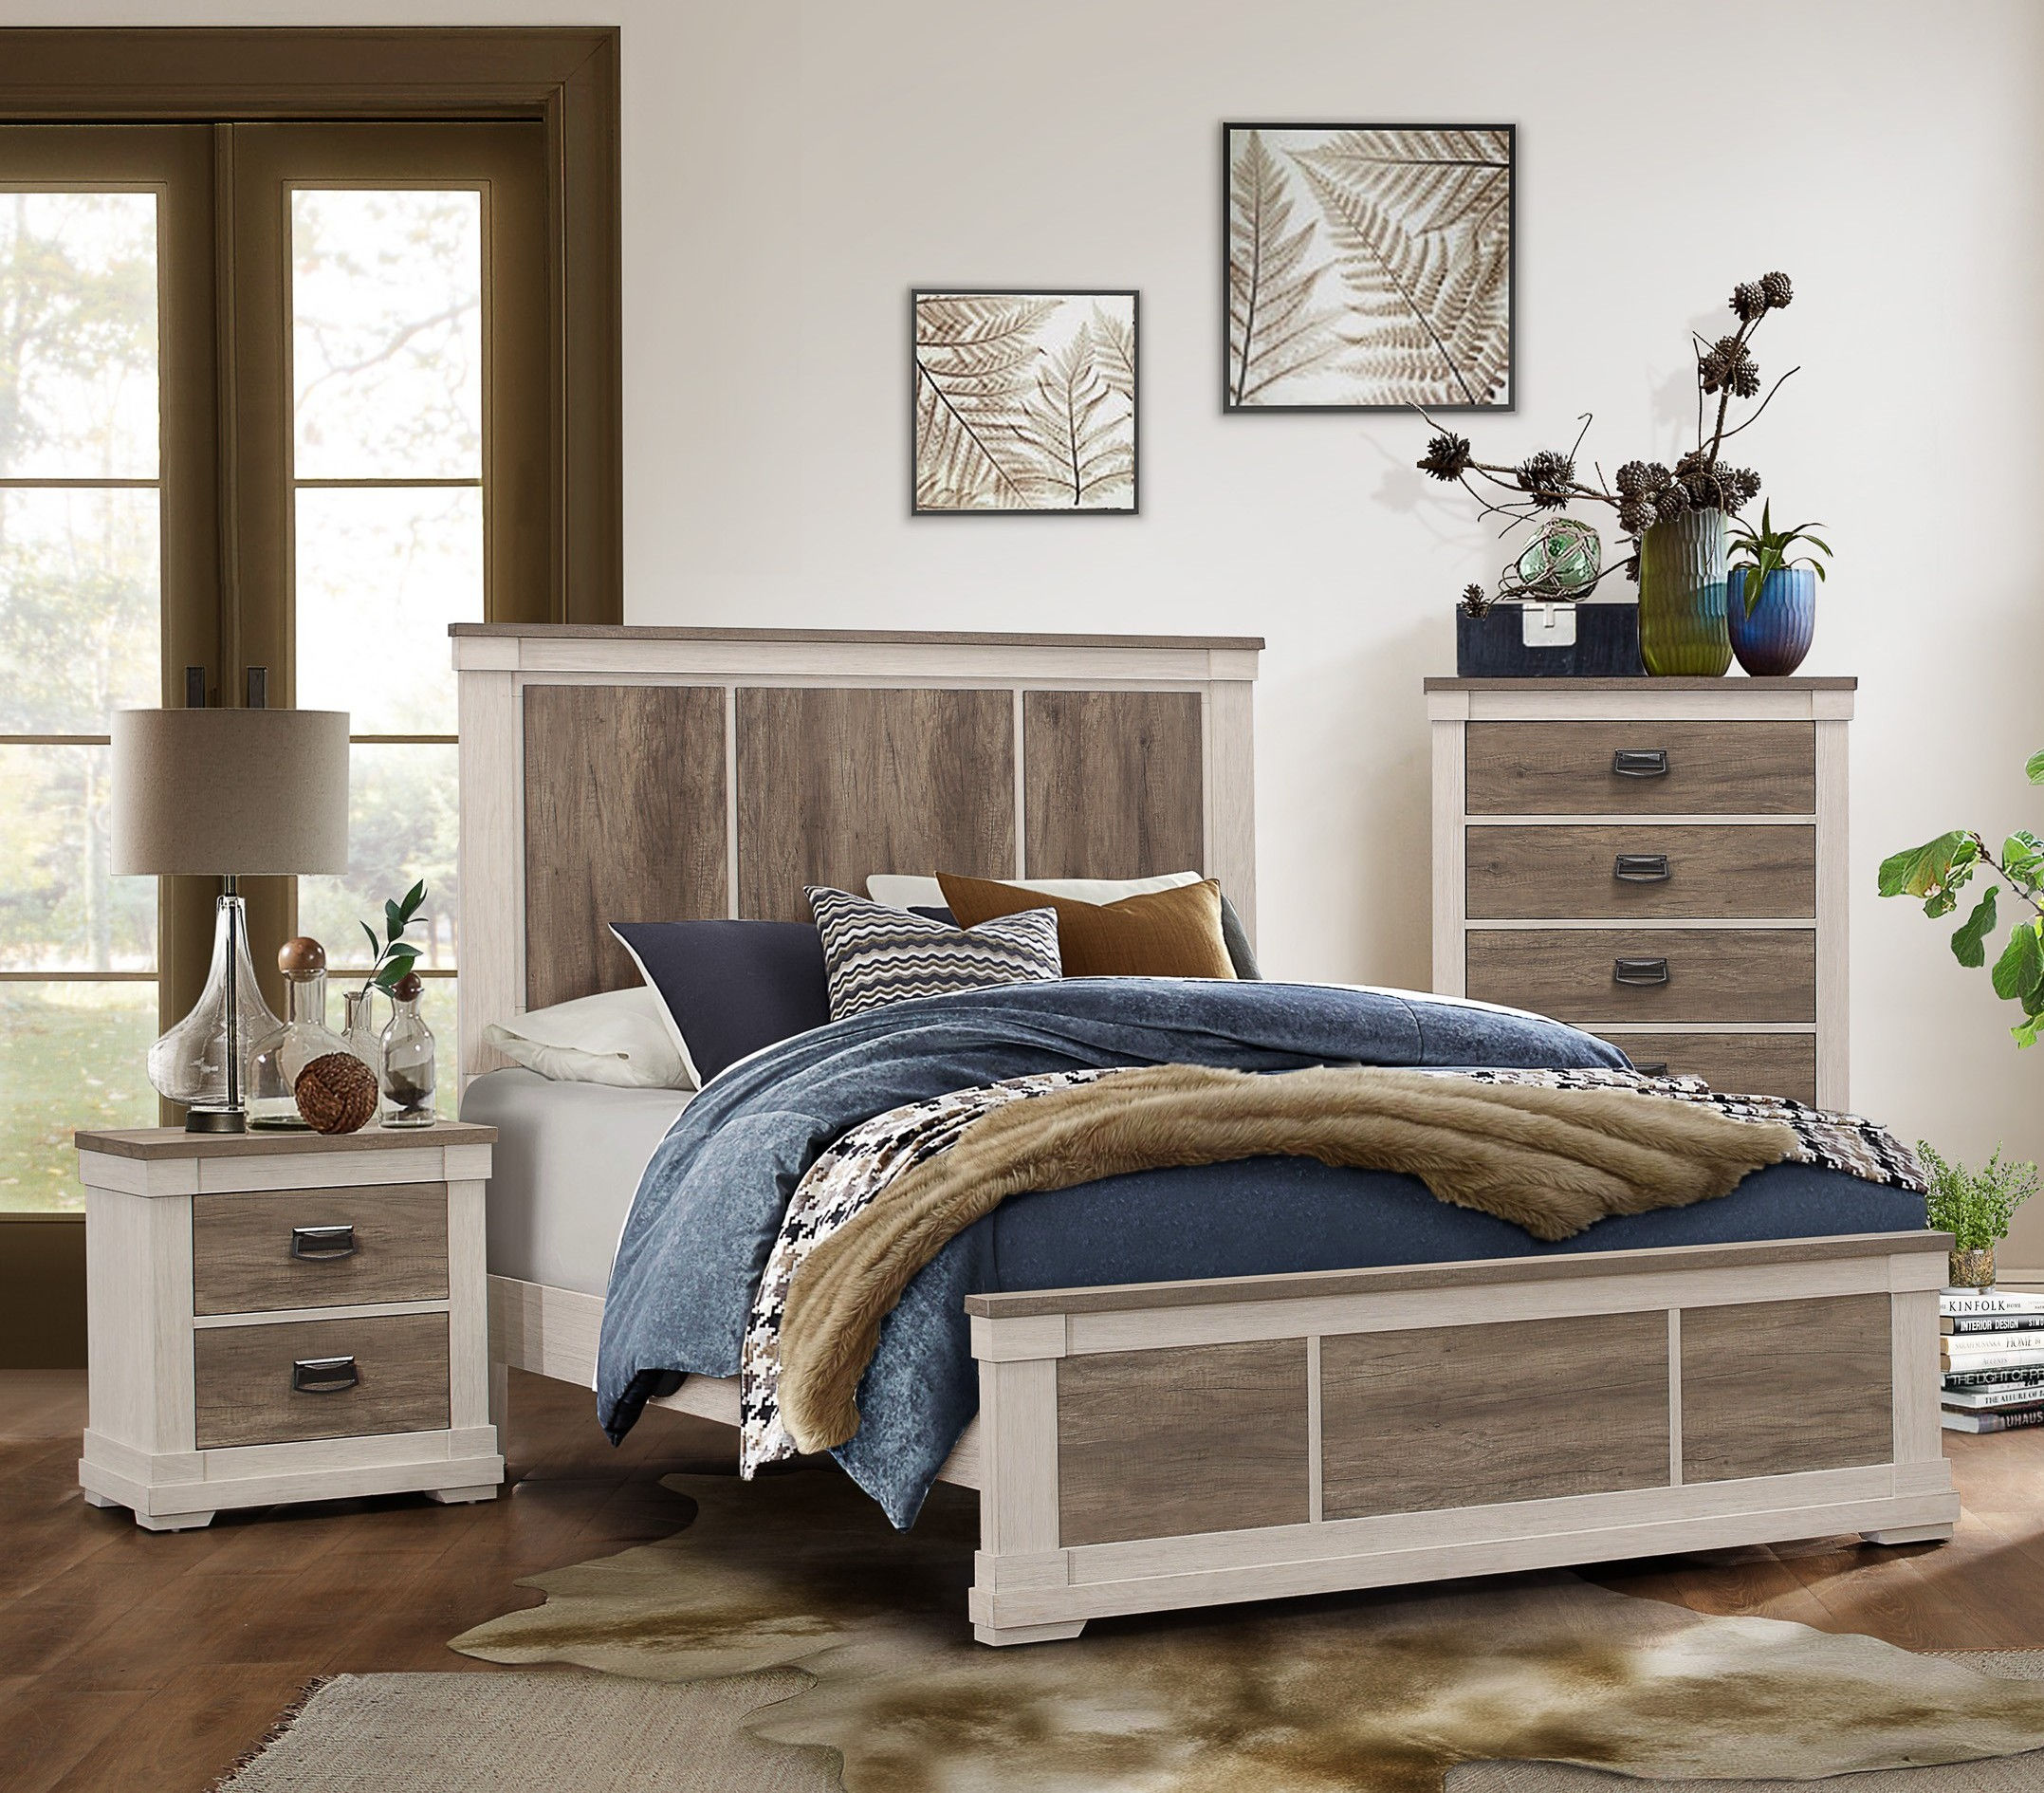 Home Elegance Arcadia White Weathered Gray 2pc Bedroom Set with Twin Bed